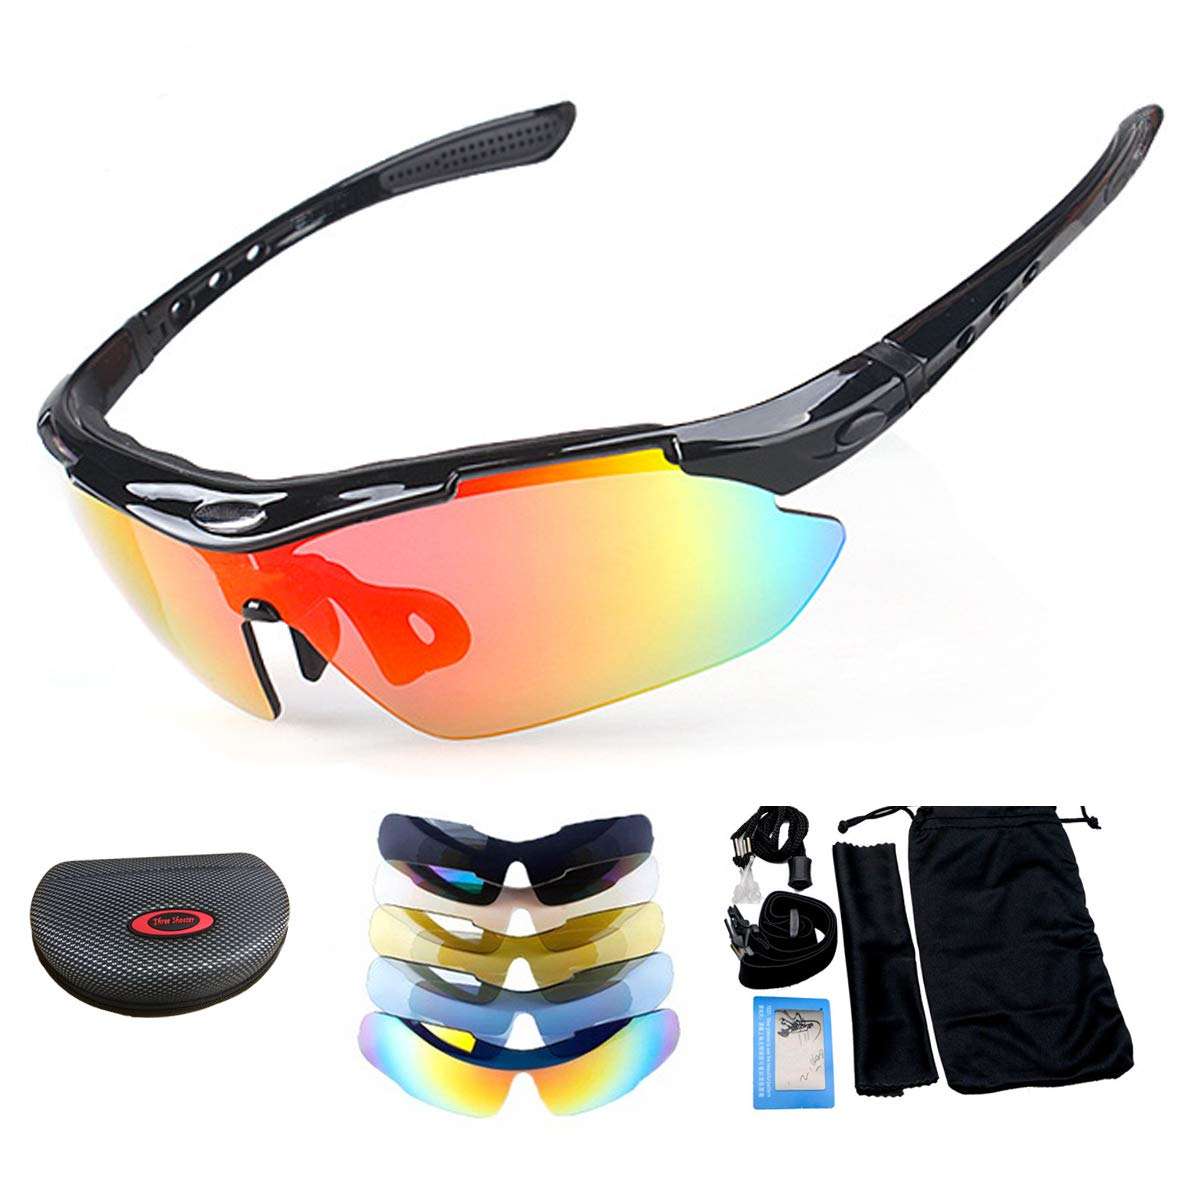 MASO Polarized Sports Sunglasses UV400 Cycling Glasses TR90 Unbreakable Frame with 5 Interchangeable Lenses for Men Women Driving Golf(Sand Black)